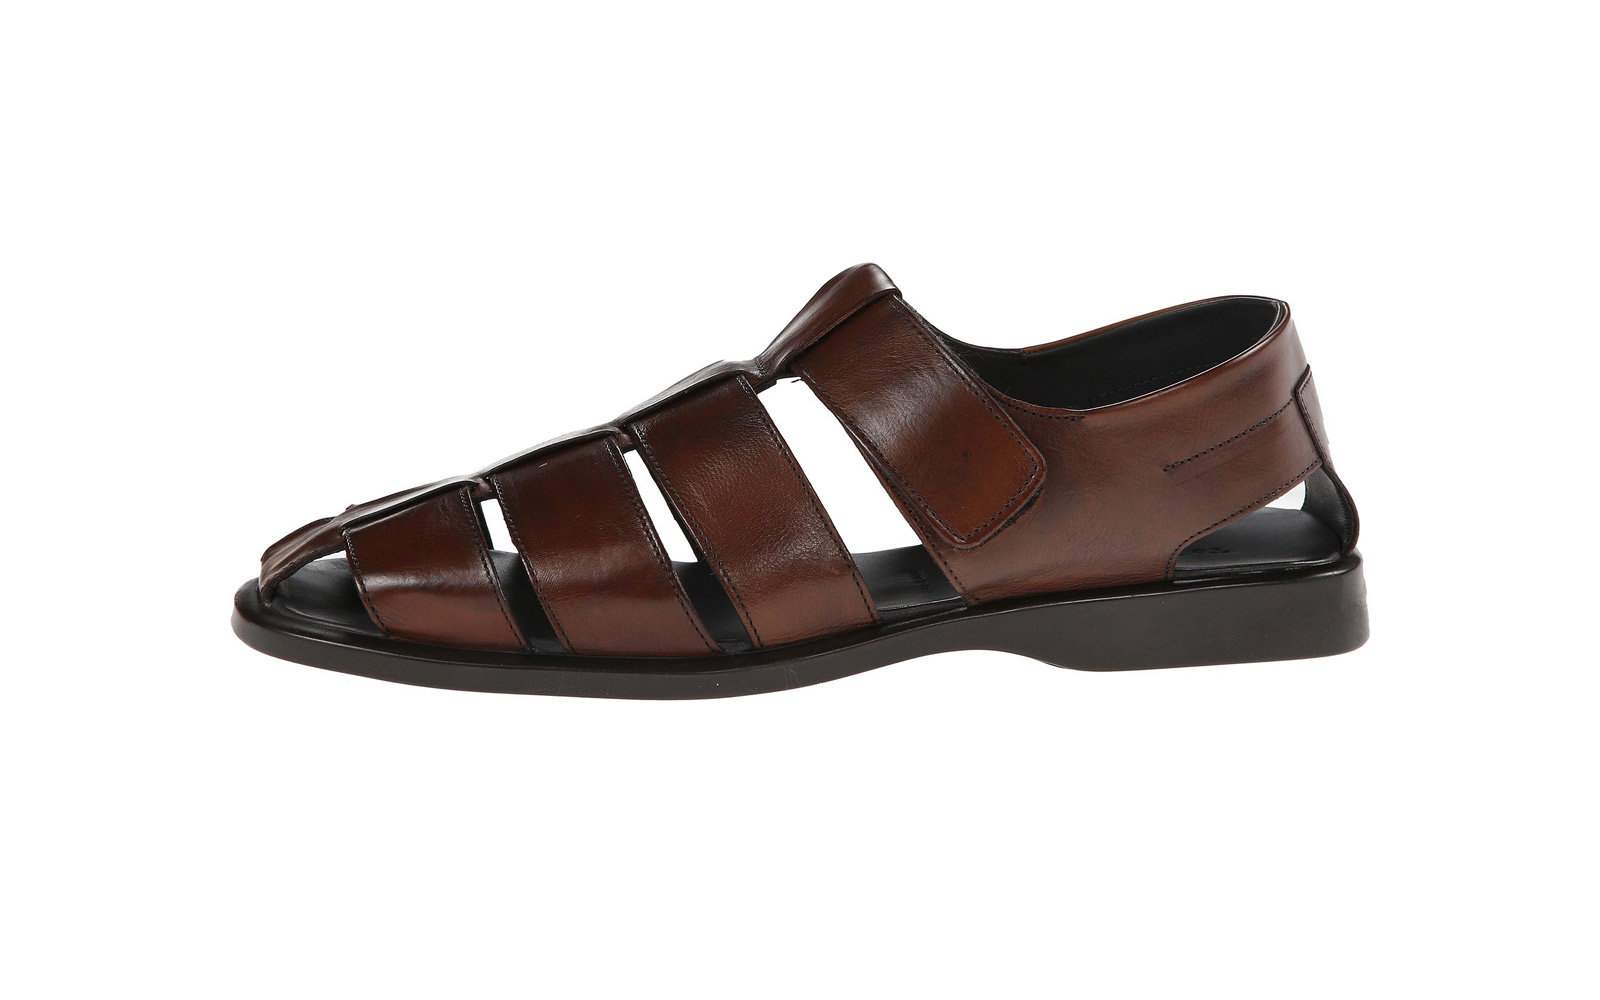 5332427b85a The Best Men s Sandals to Pack for Your Next Vacation